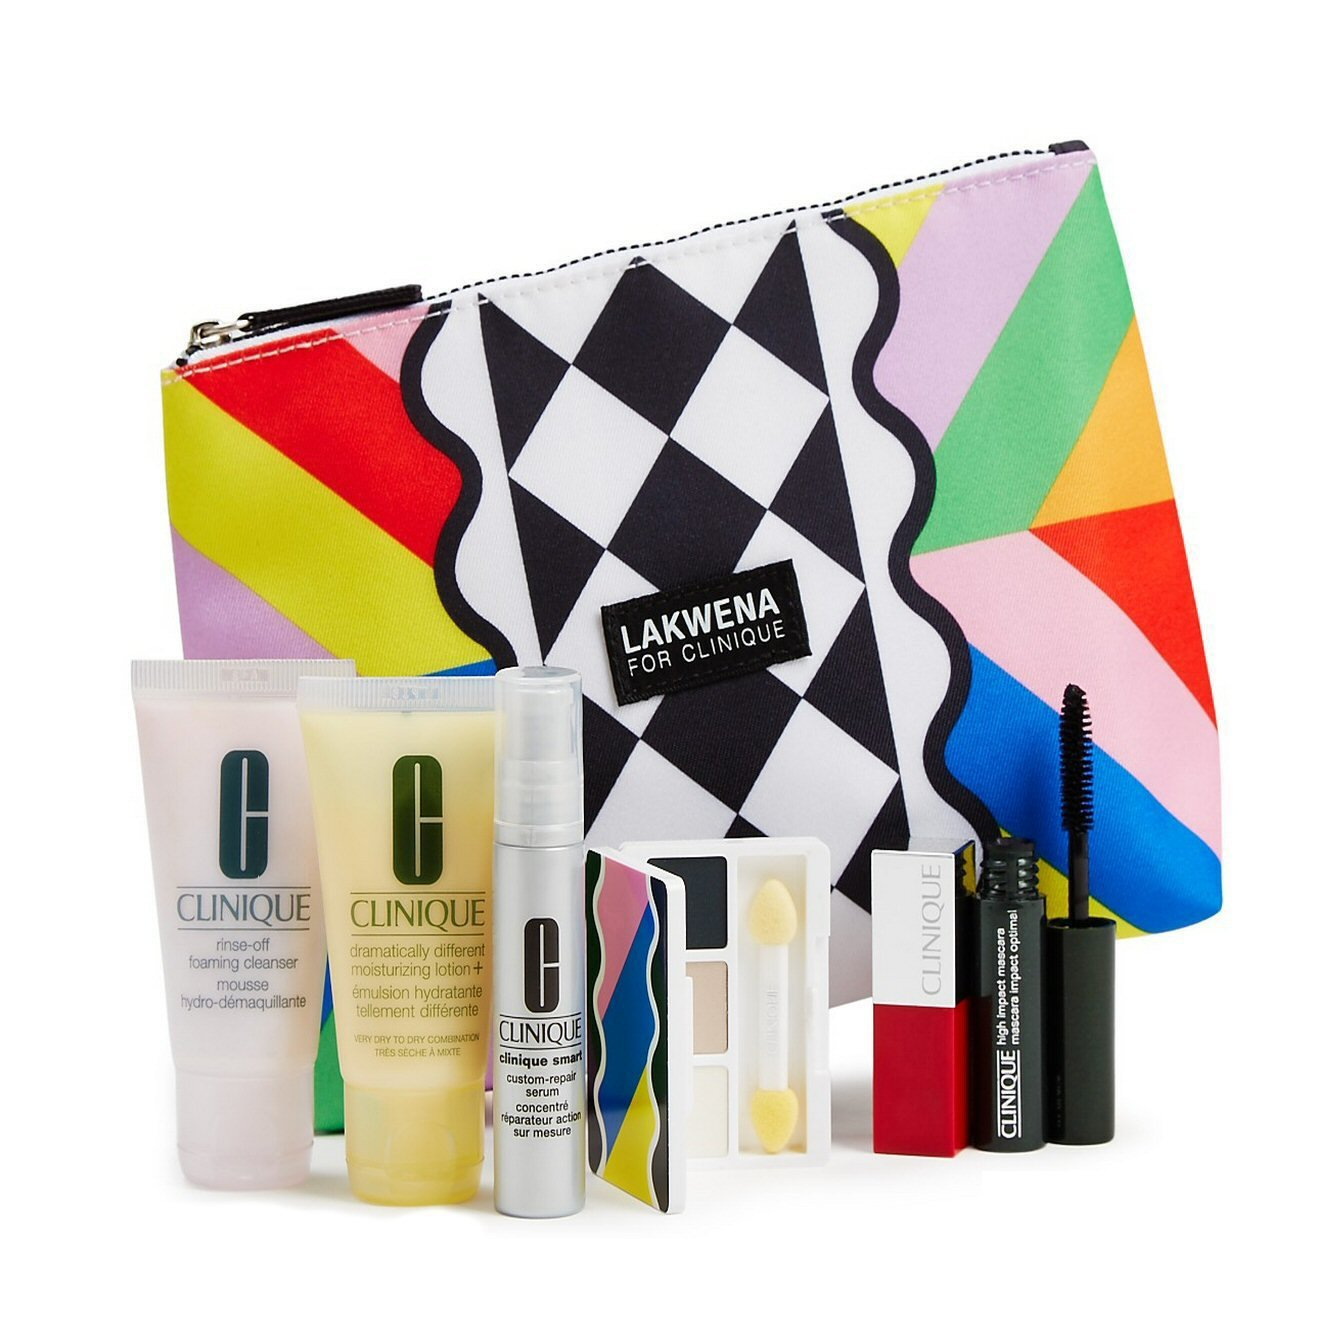 Clinique 2016 Spring 7 Pcs Skin Care & Makeup Gift Set (A $70 Value) -- Color of Sweet